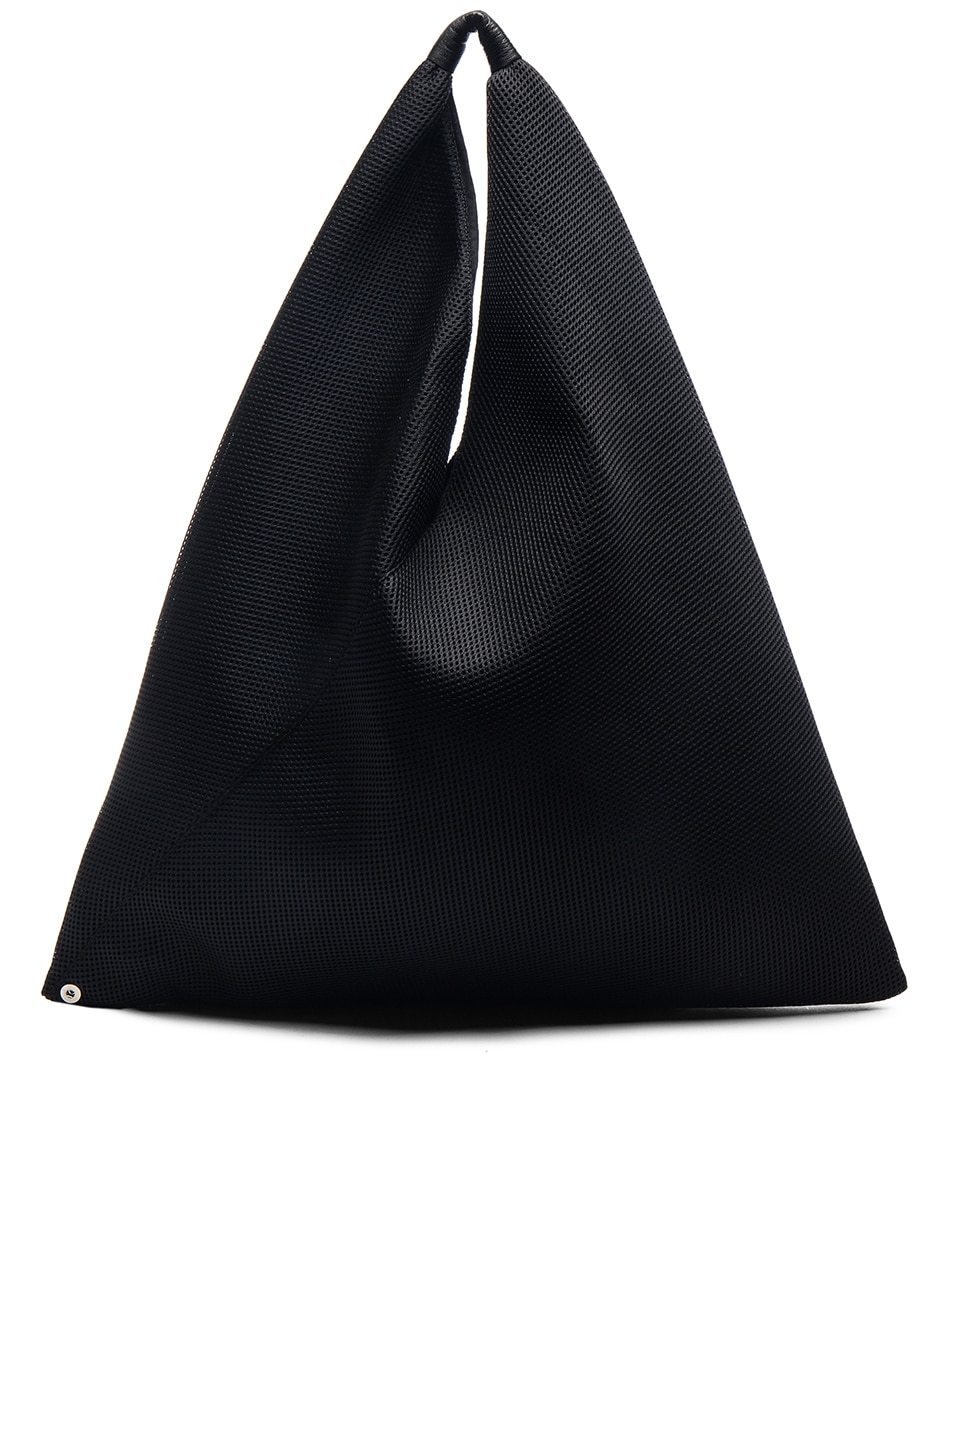 Image 1 of MM6 Maison Margiela Hobo Bag in Black